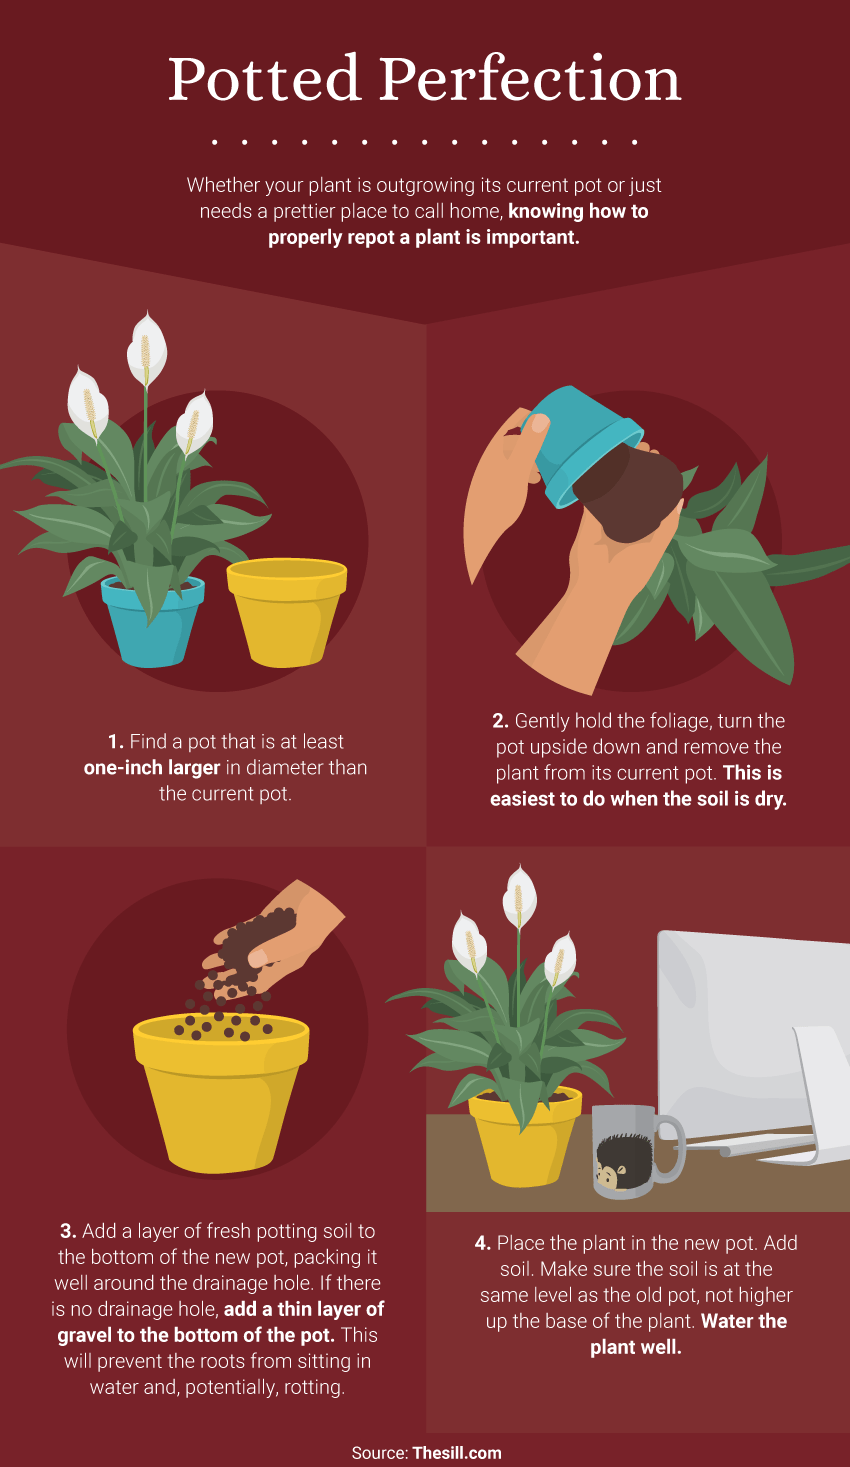 Potted Perfection - The Benefits of Office Plants